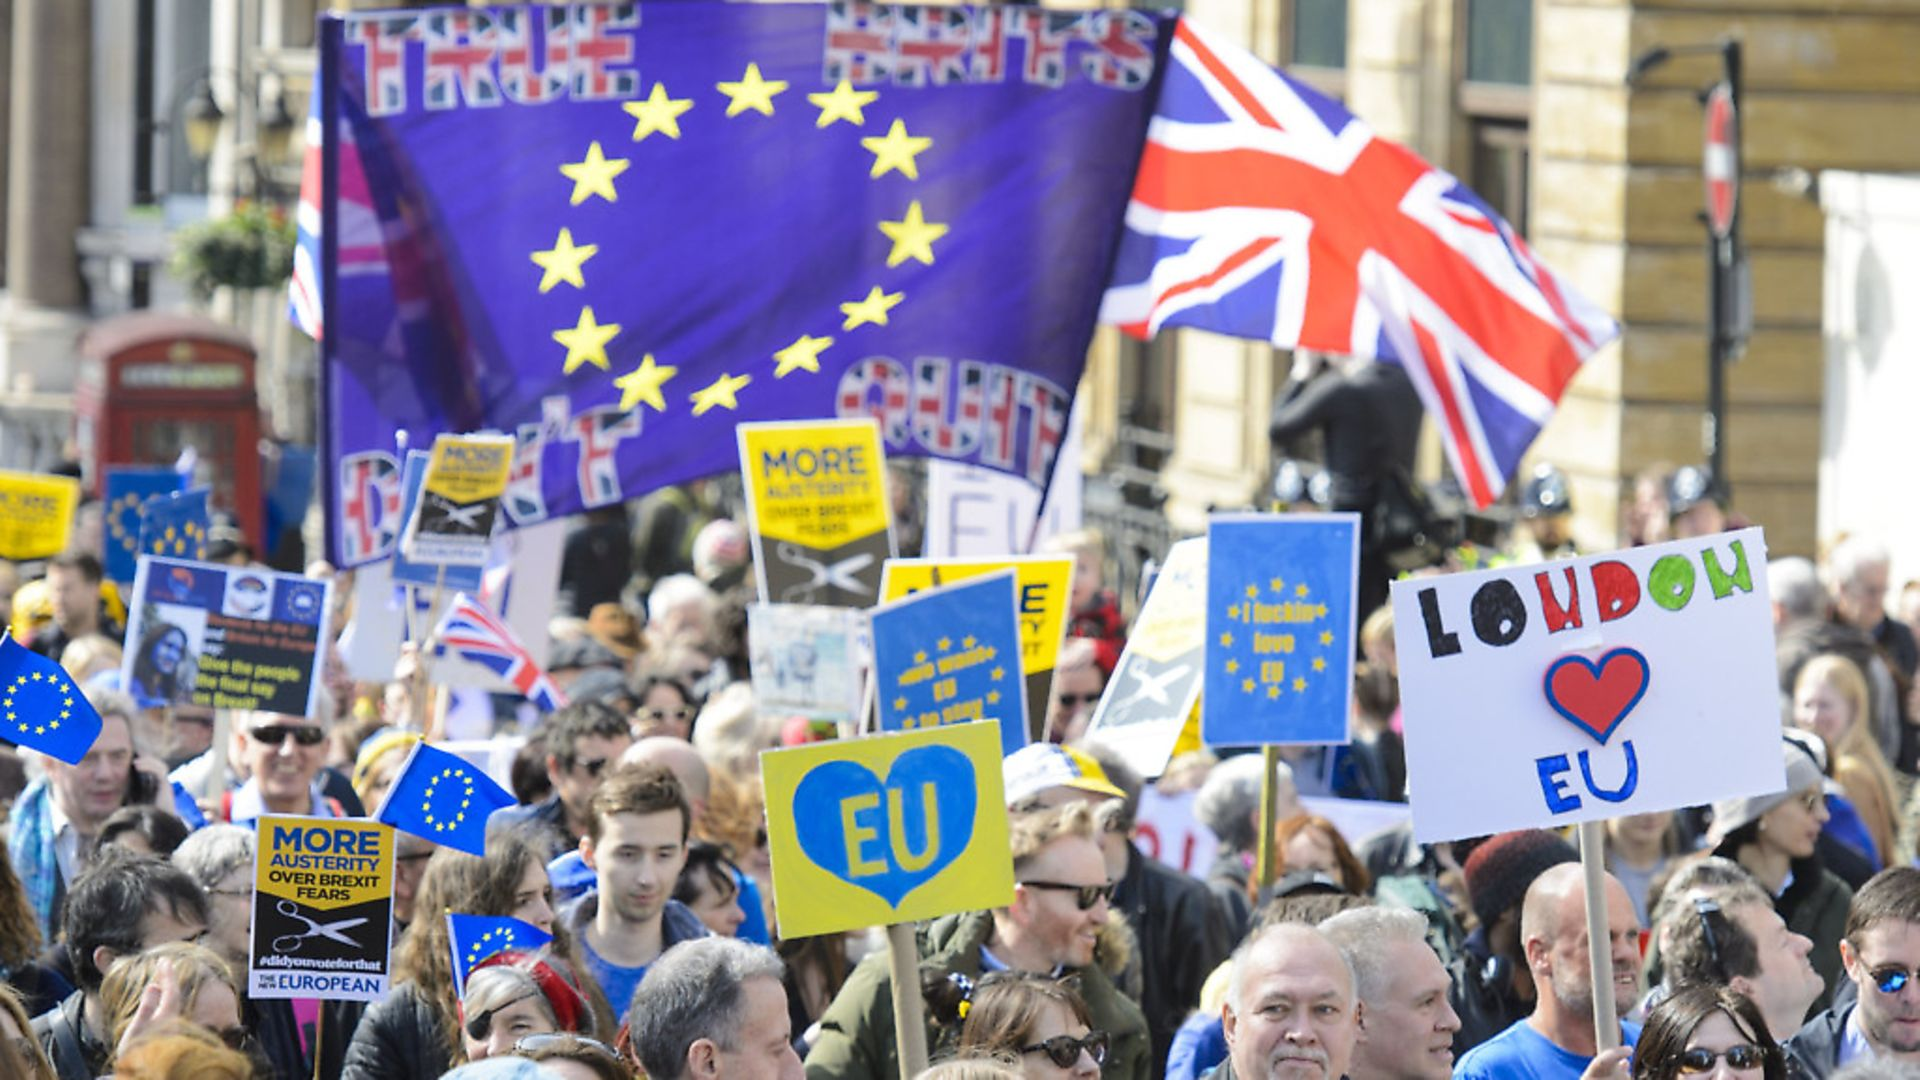 Protesters take part in a March for Europe rally against Brexit. Photograph: Matt Crossick/ EMPICS Entertainment. - Credit: Empics Entertainment